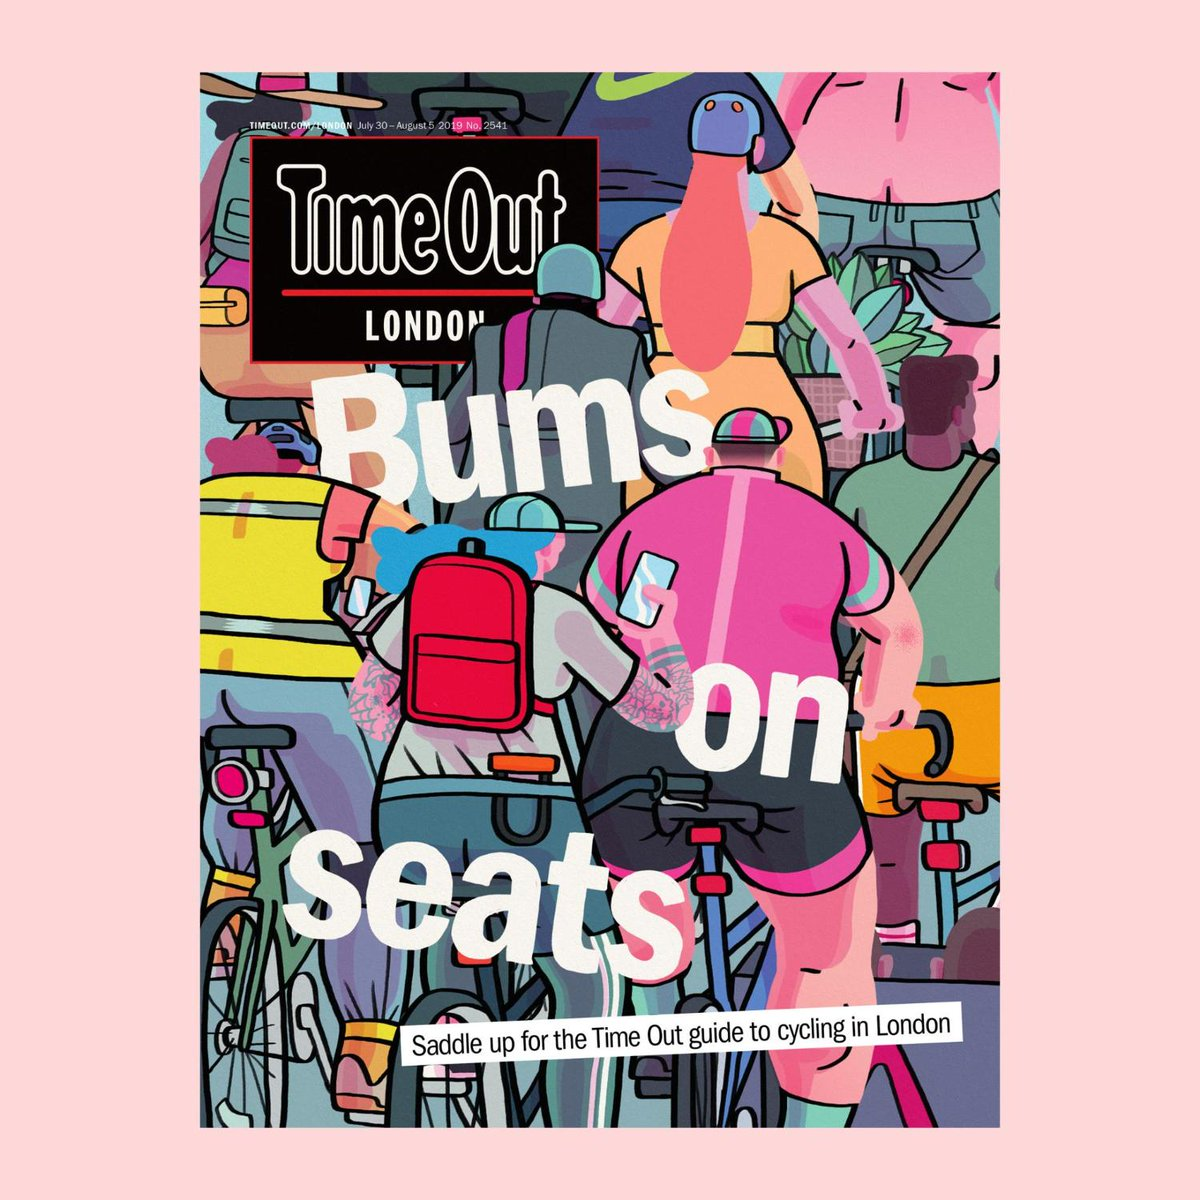 Time Out London (@TimeOutLondon) | Twitter